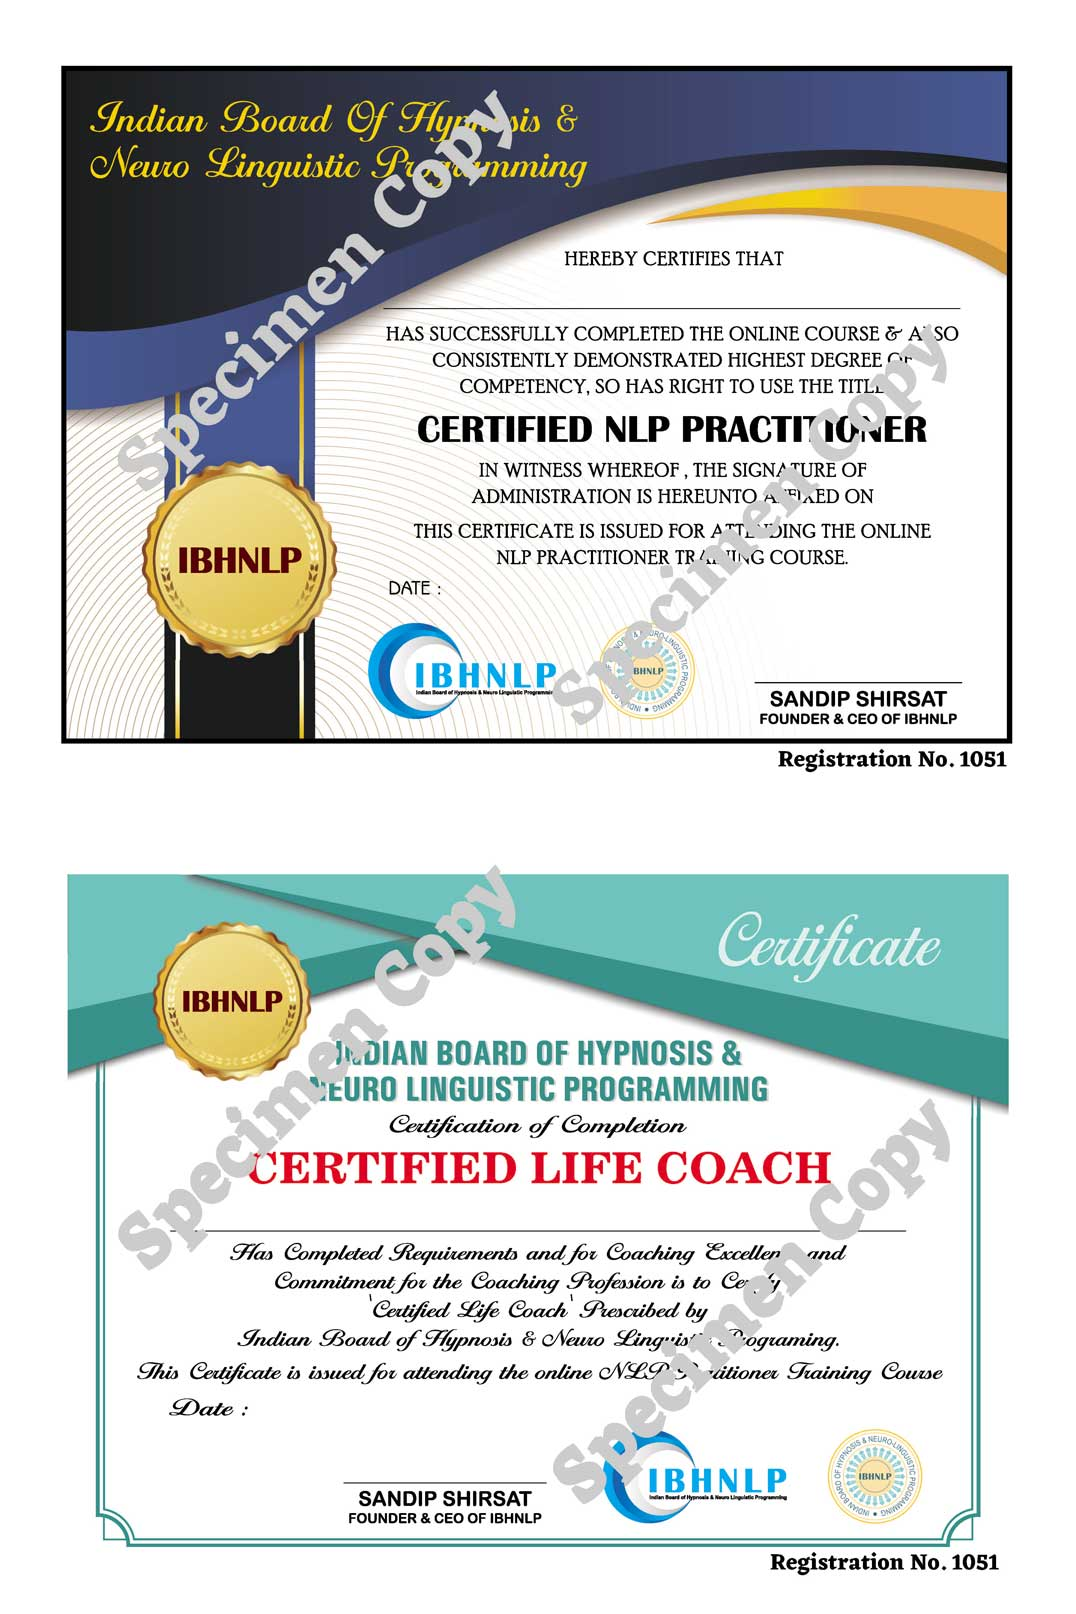 Online NLP Practitioner, NLP Coach Certification Course ...